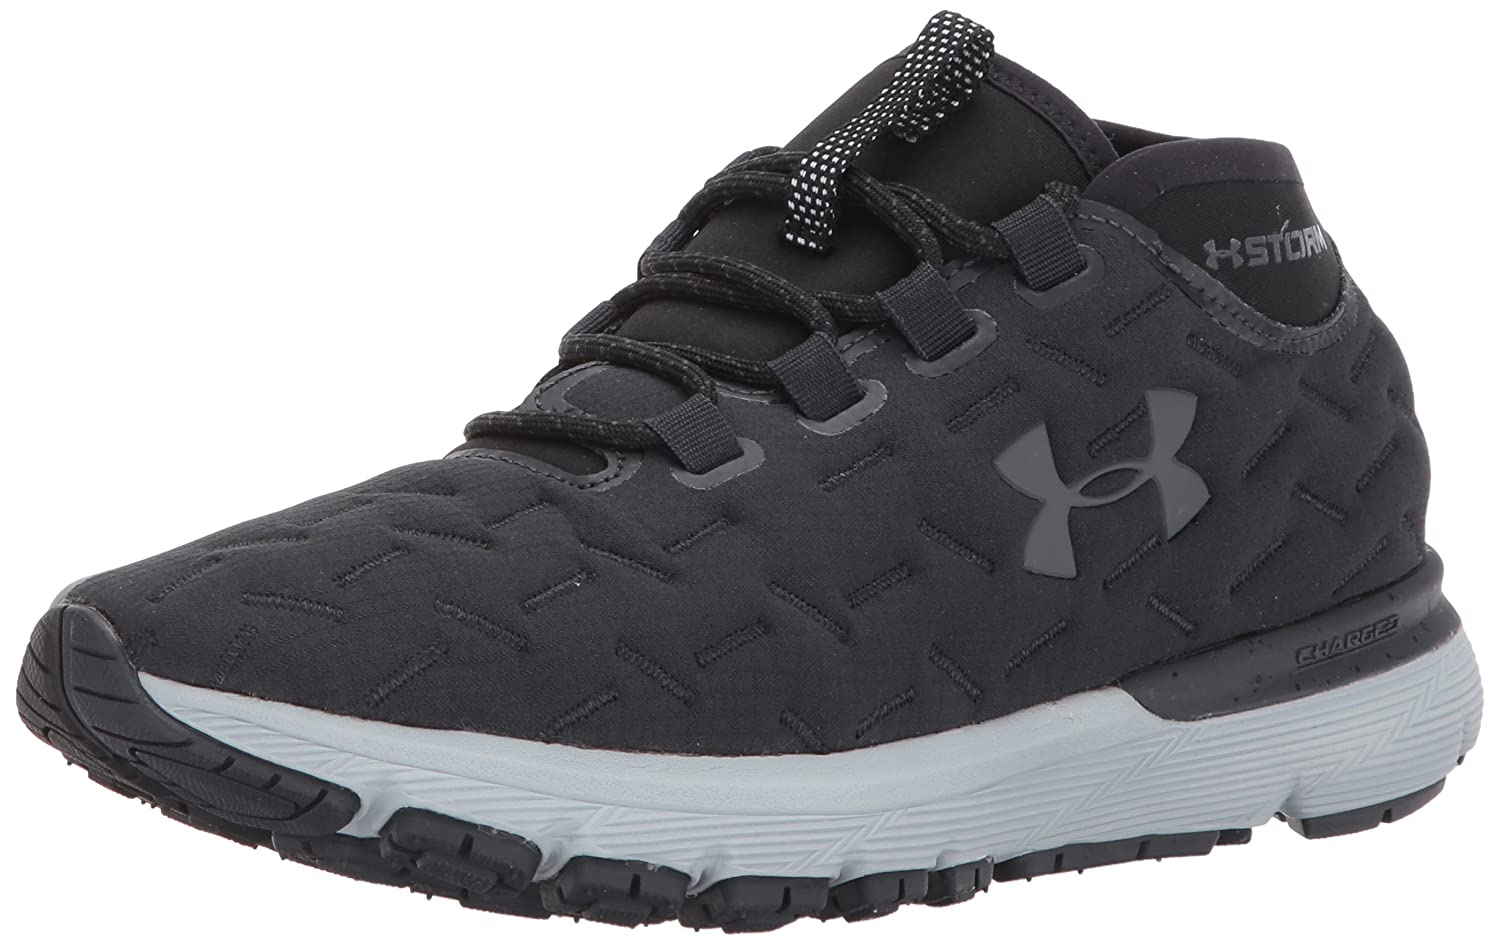 Under Armour Women's Charged Reactor Running Shoe B01MXWJMVQ 8 M US|Anthracite (100)/Overcast Gray